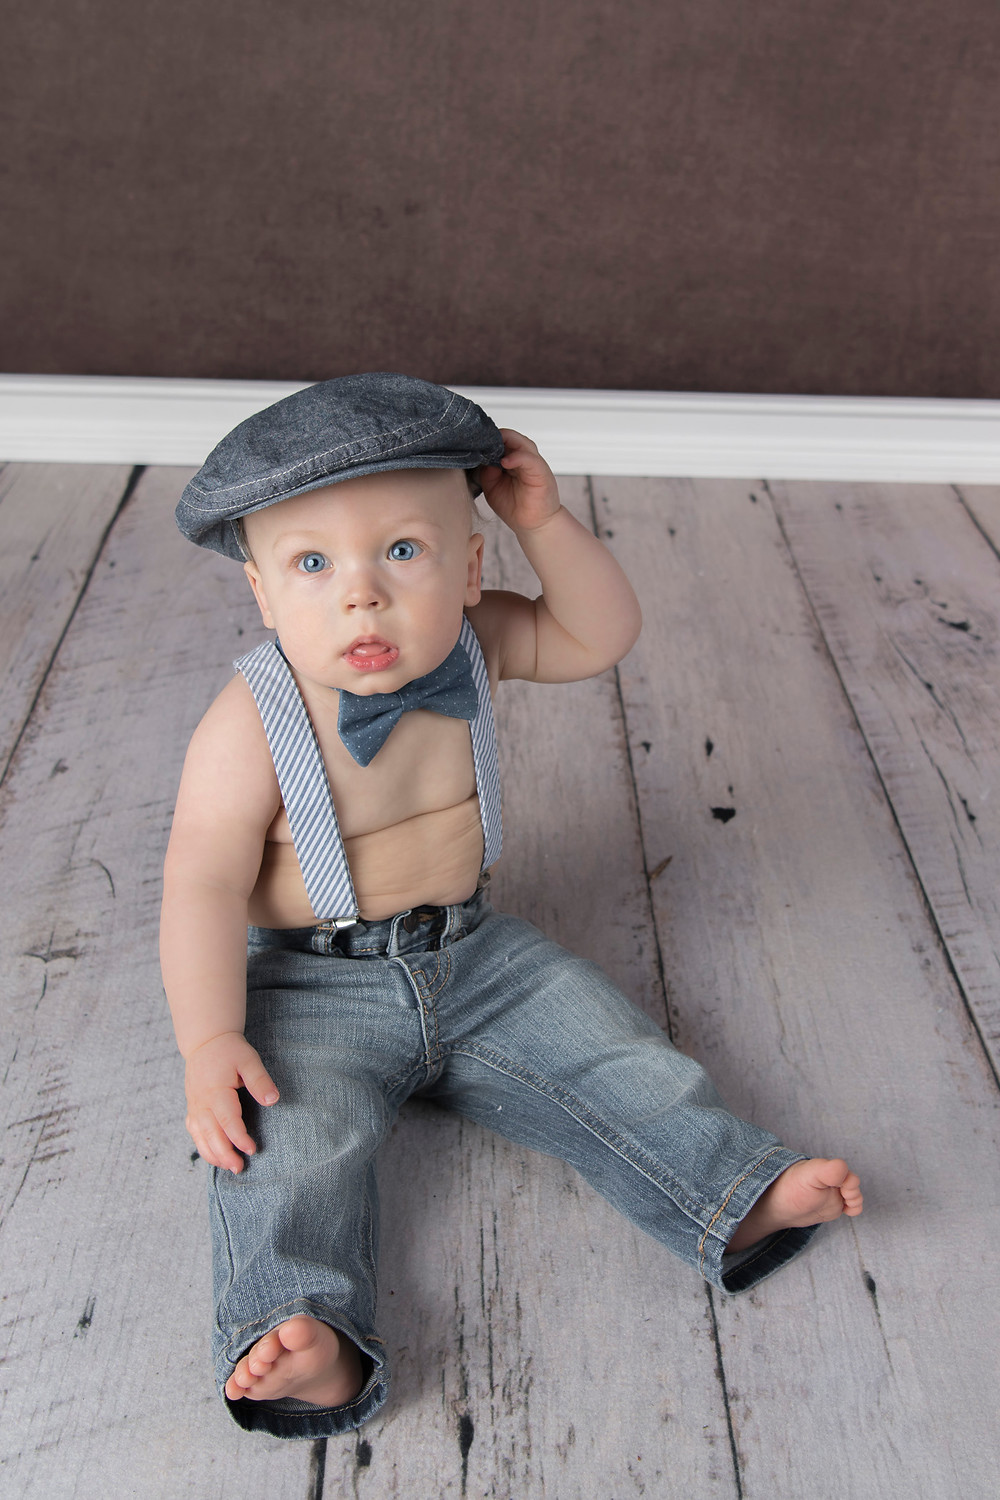 9 month old boy with cap